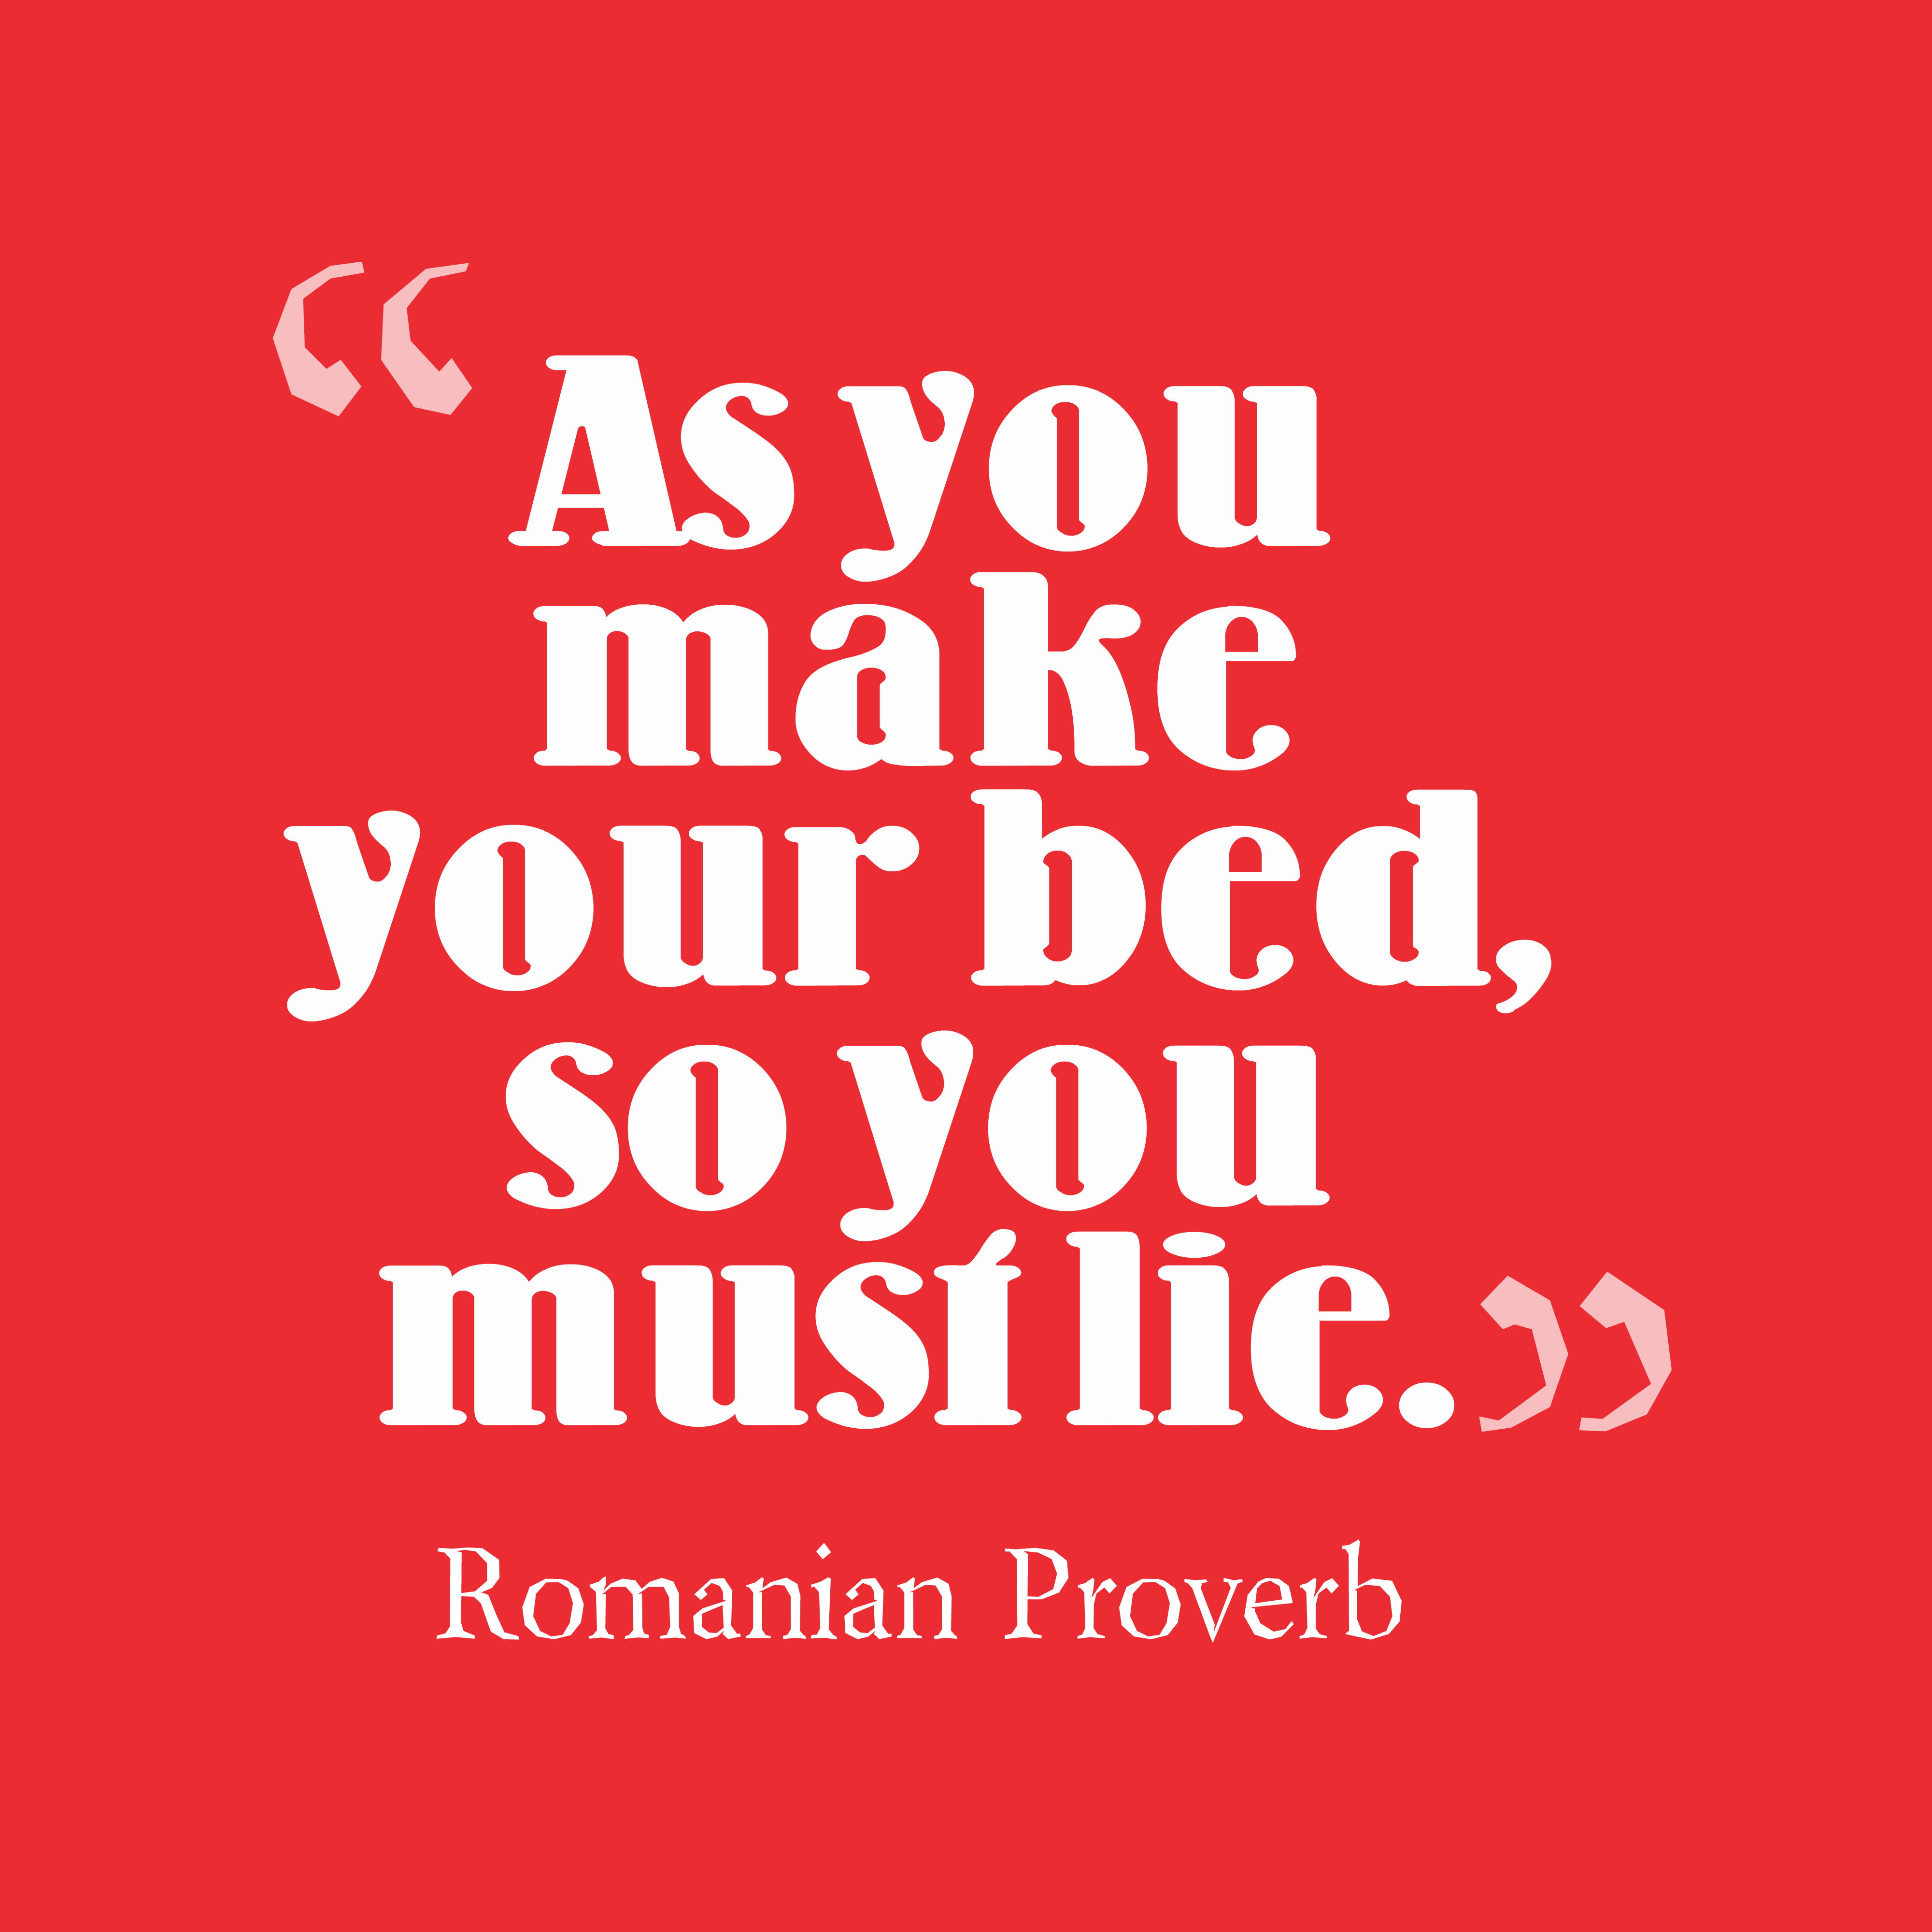 Picture » Romanian Proverb About Decision